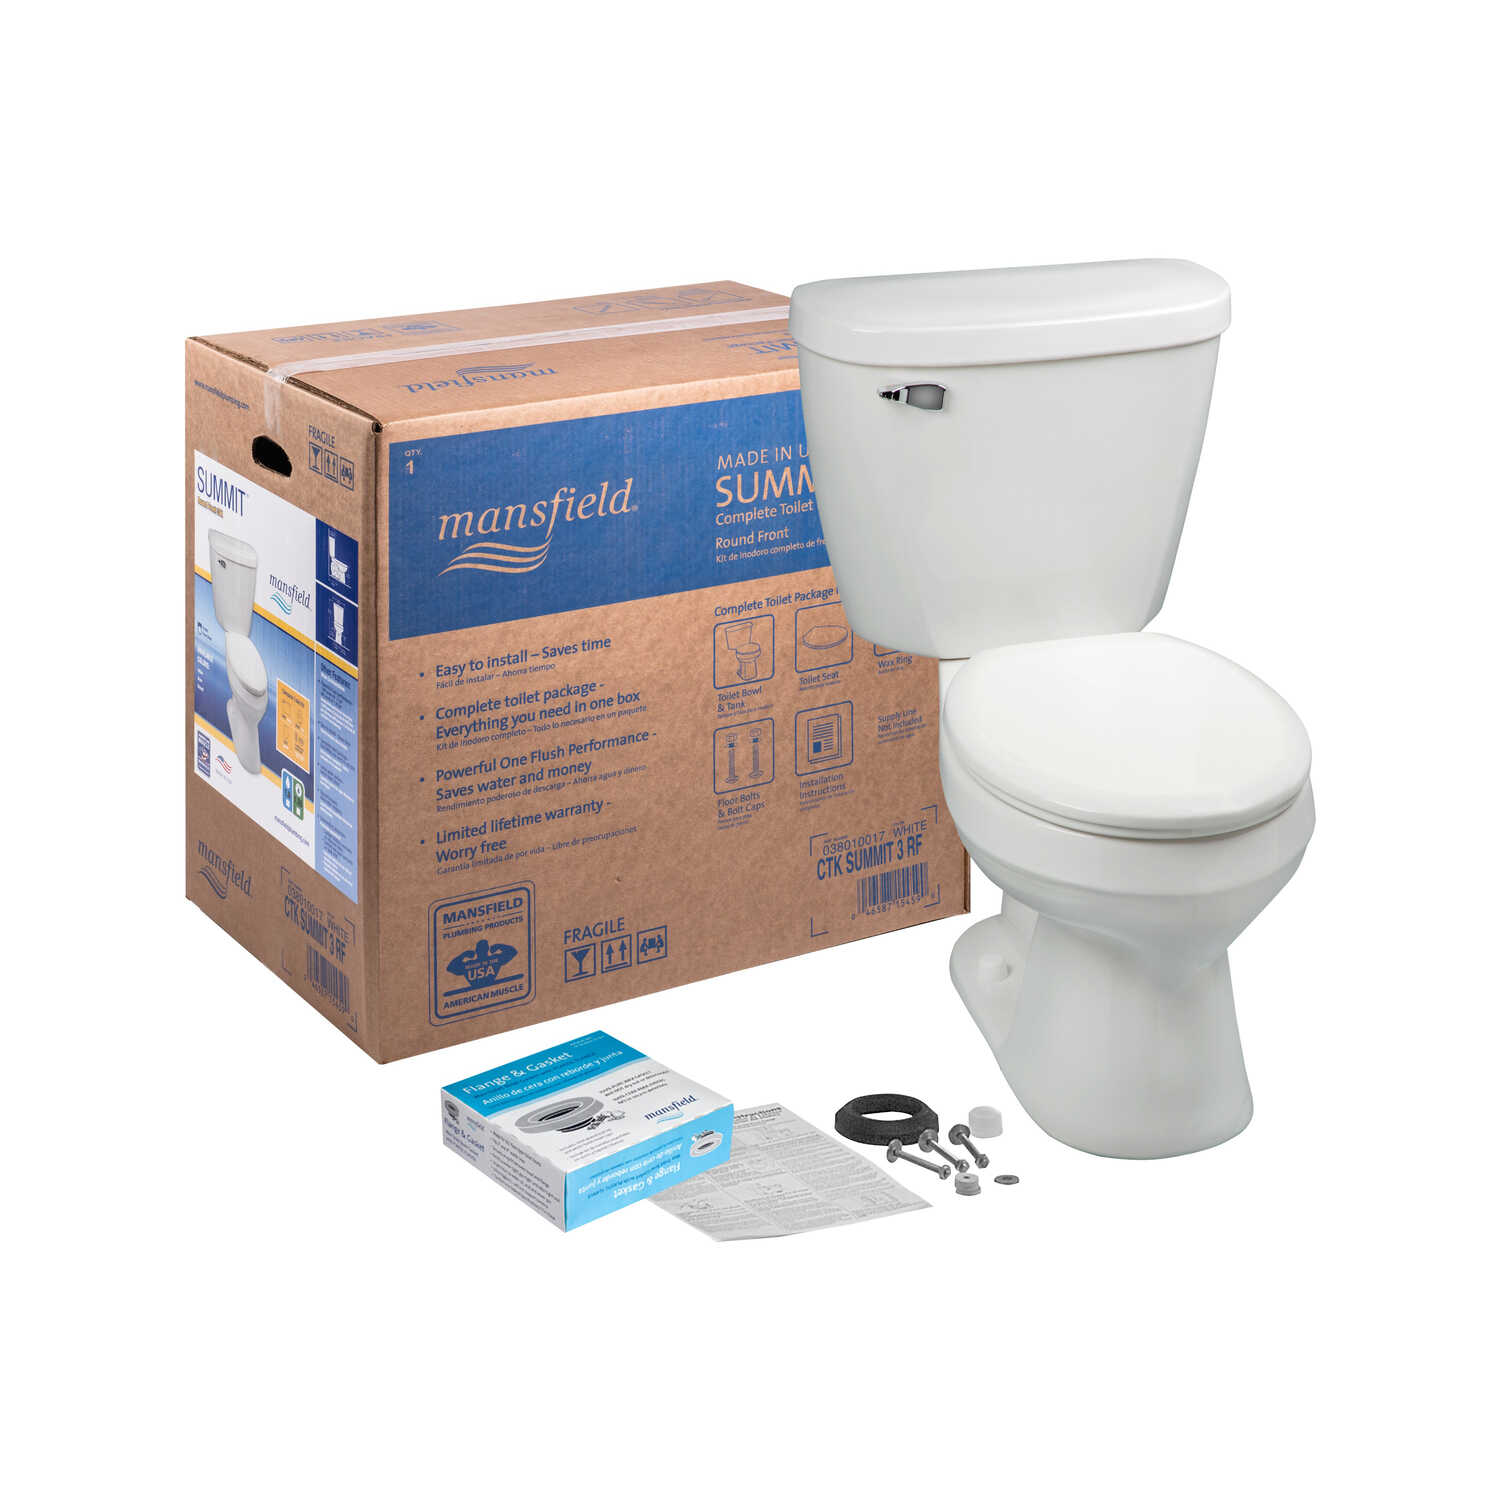 Mansfield Summit 1 28 Gal Complete Toilet Ace Hardware